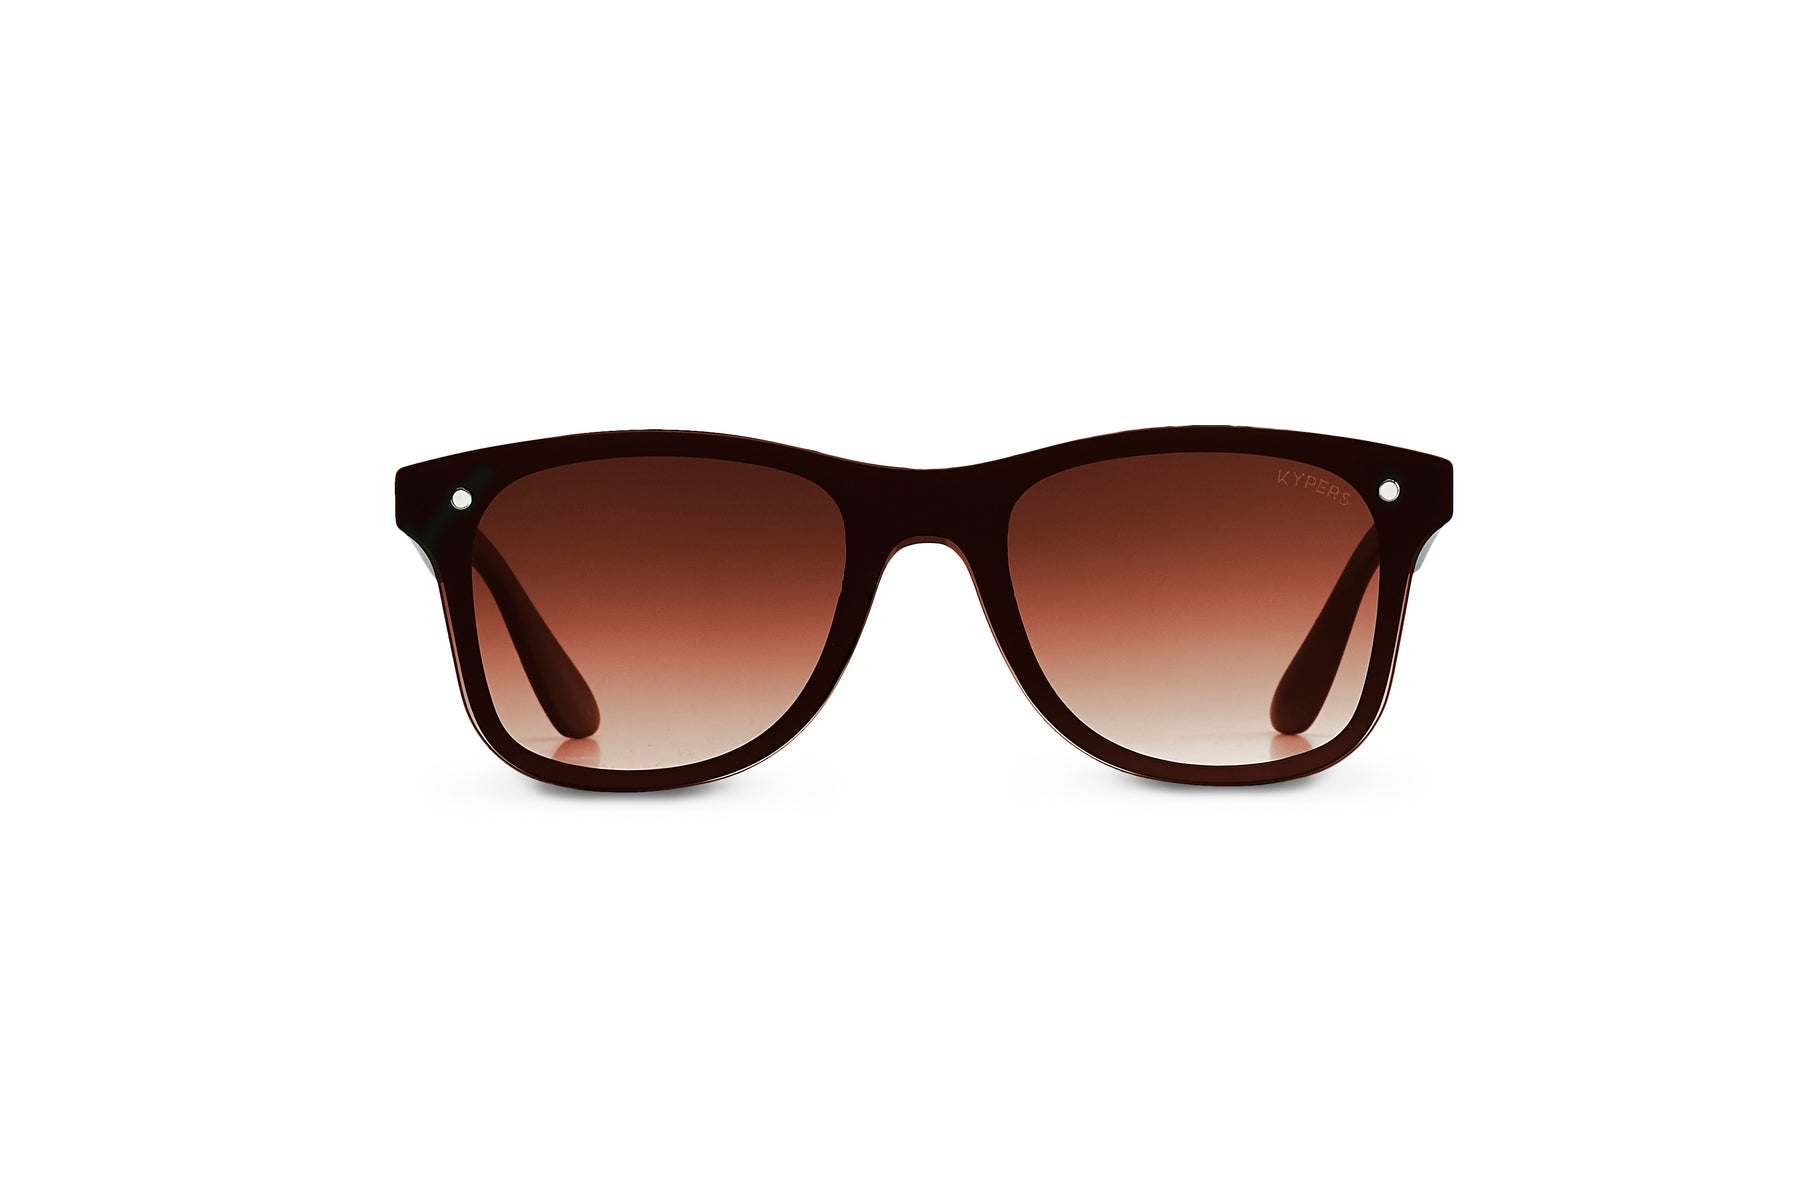 KYPERS sunglasses model FRANK FK001 with black frame and gradient brown lens